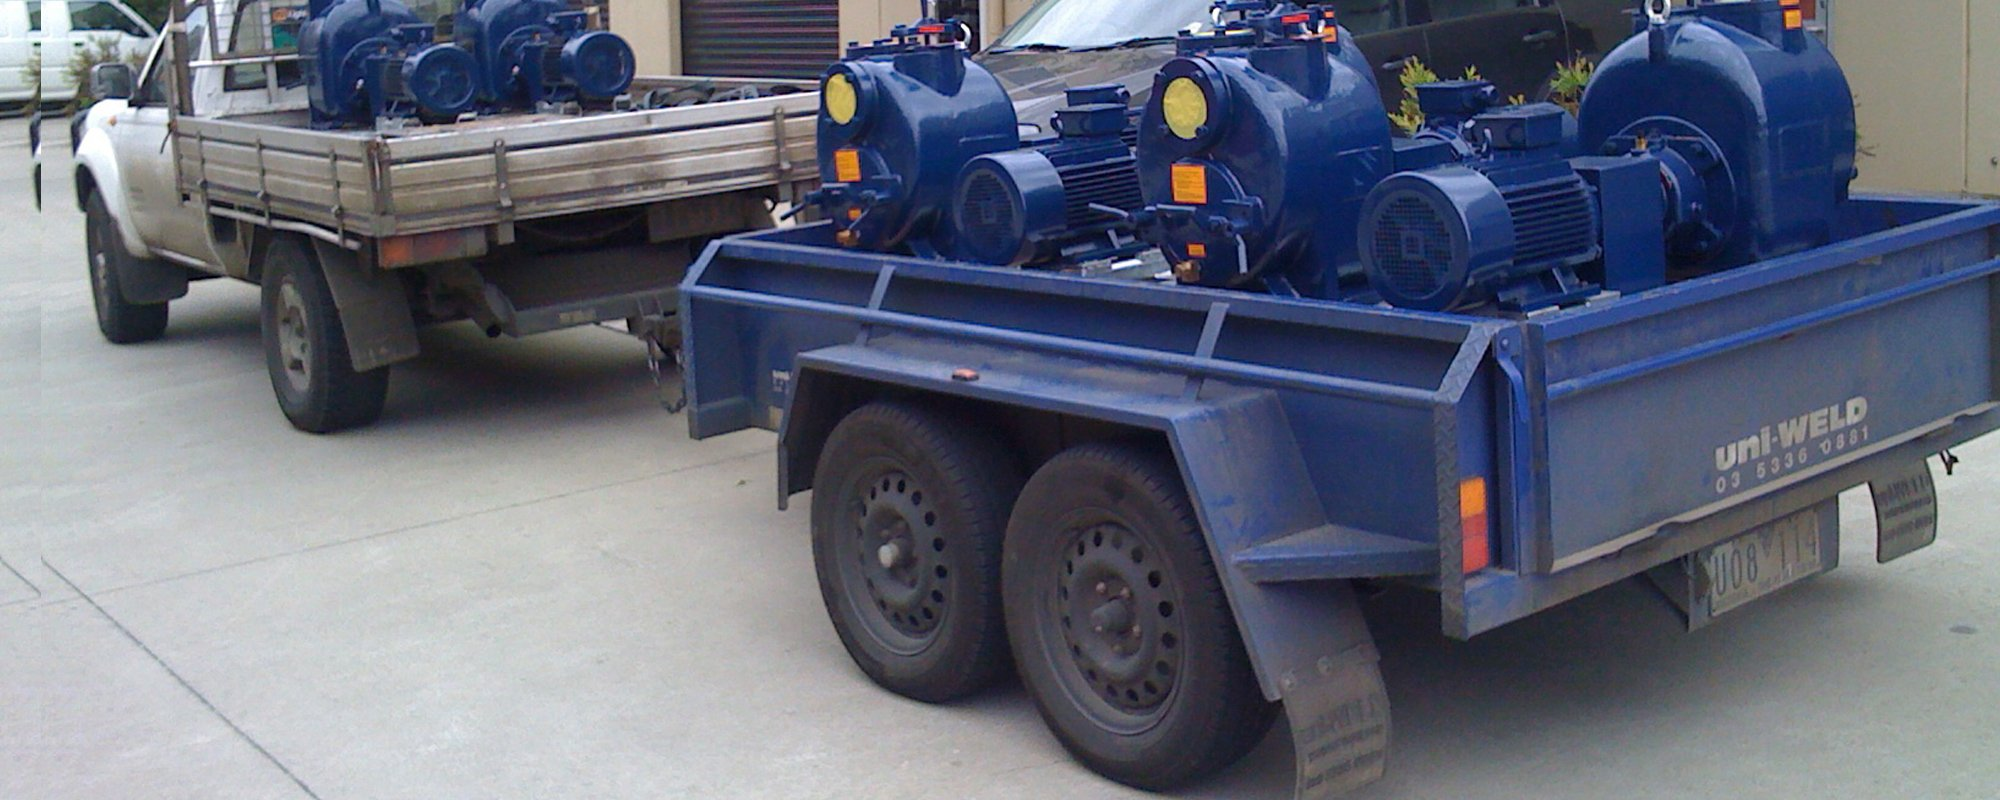 Pump being transported on machine